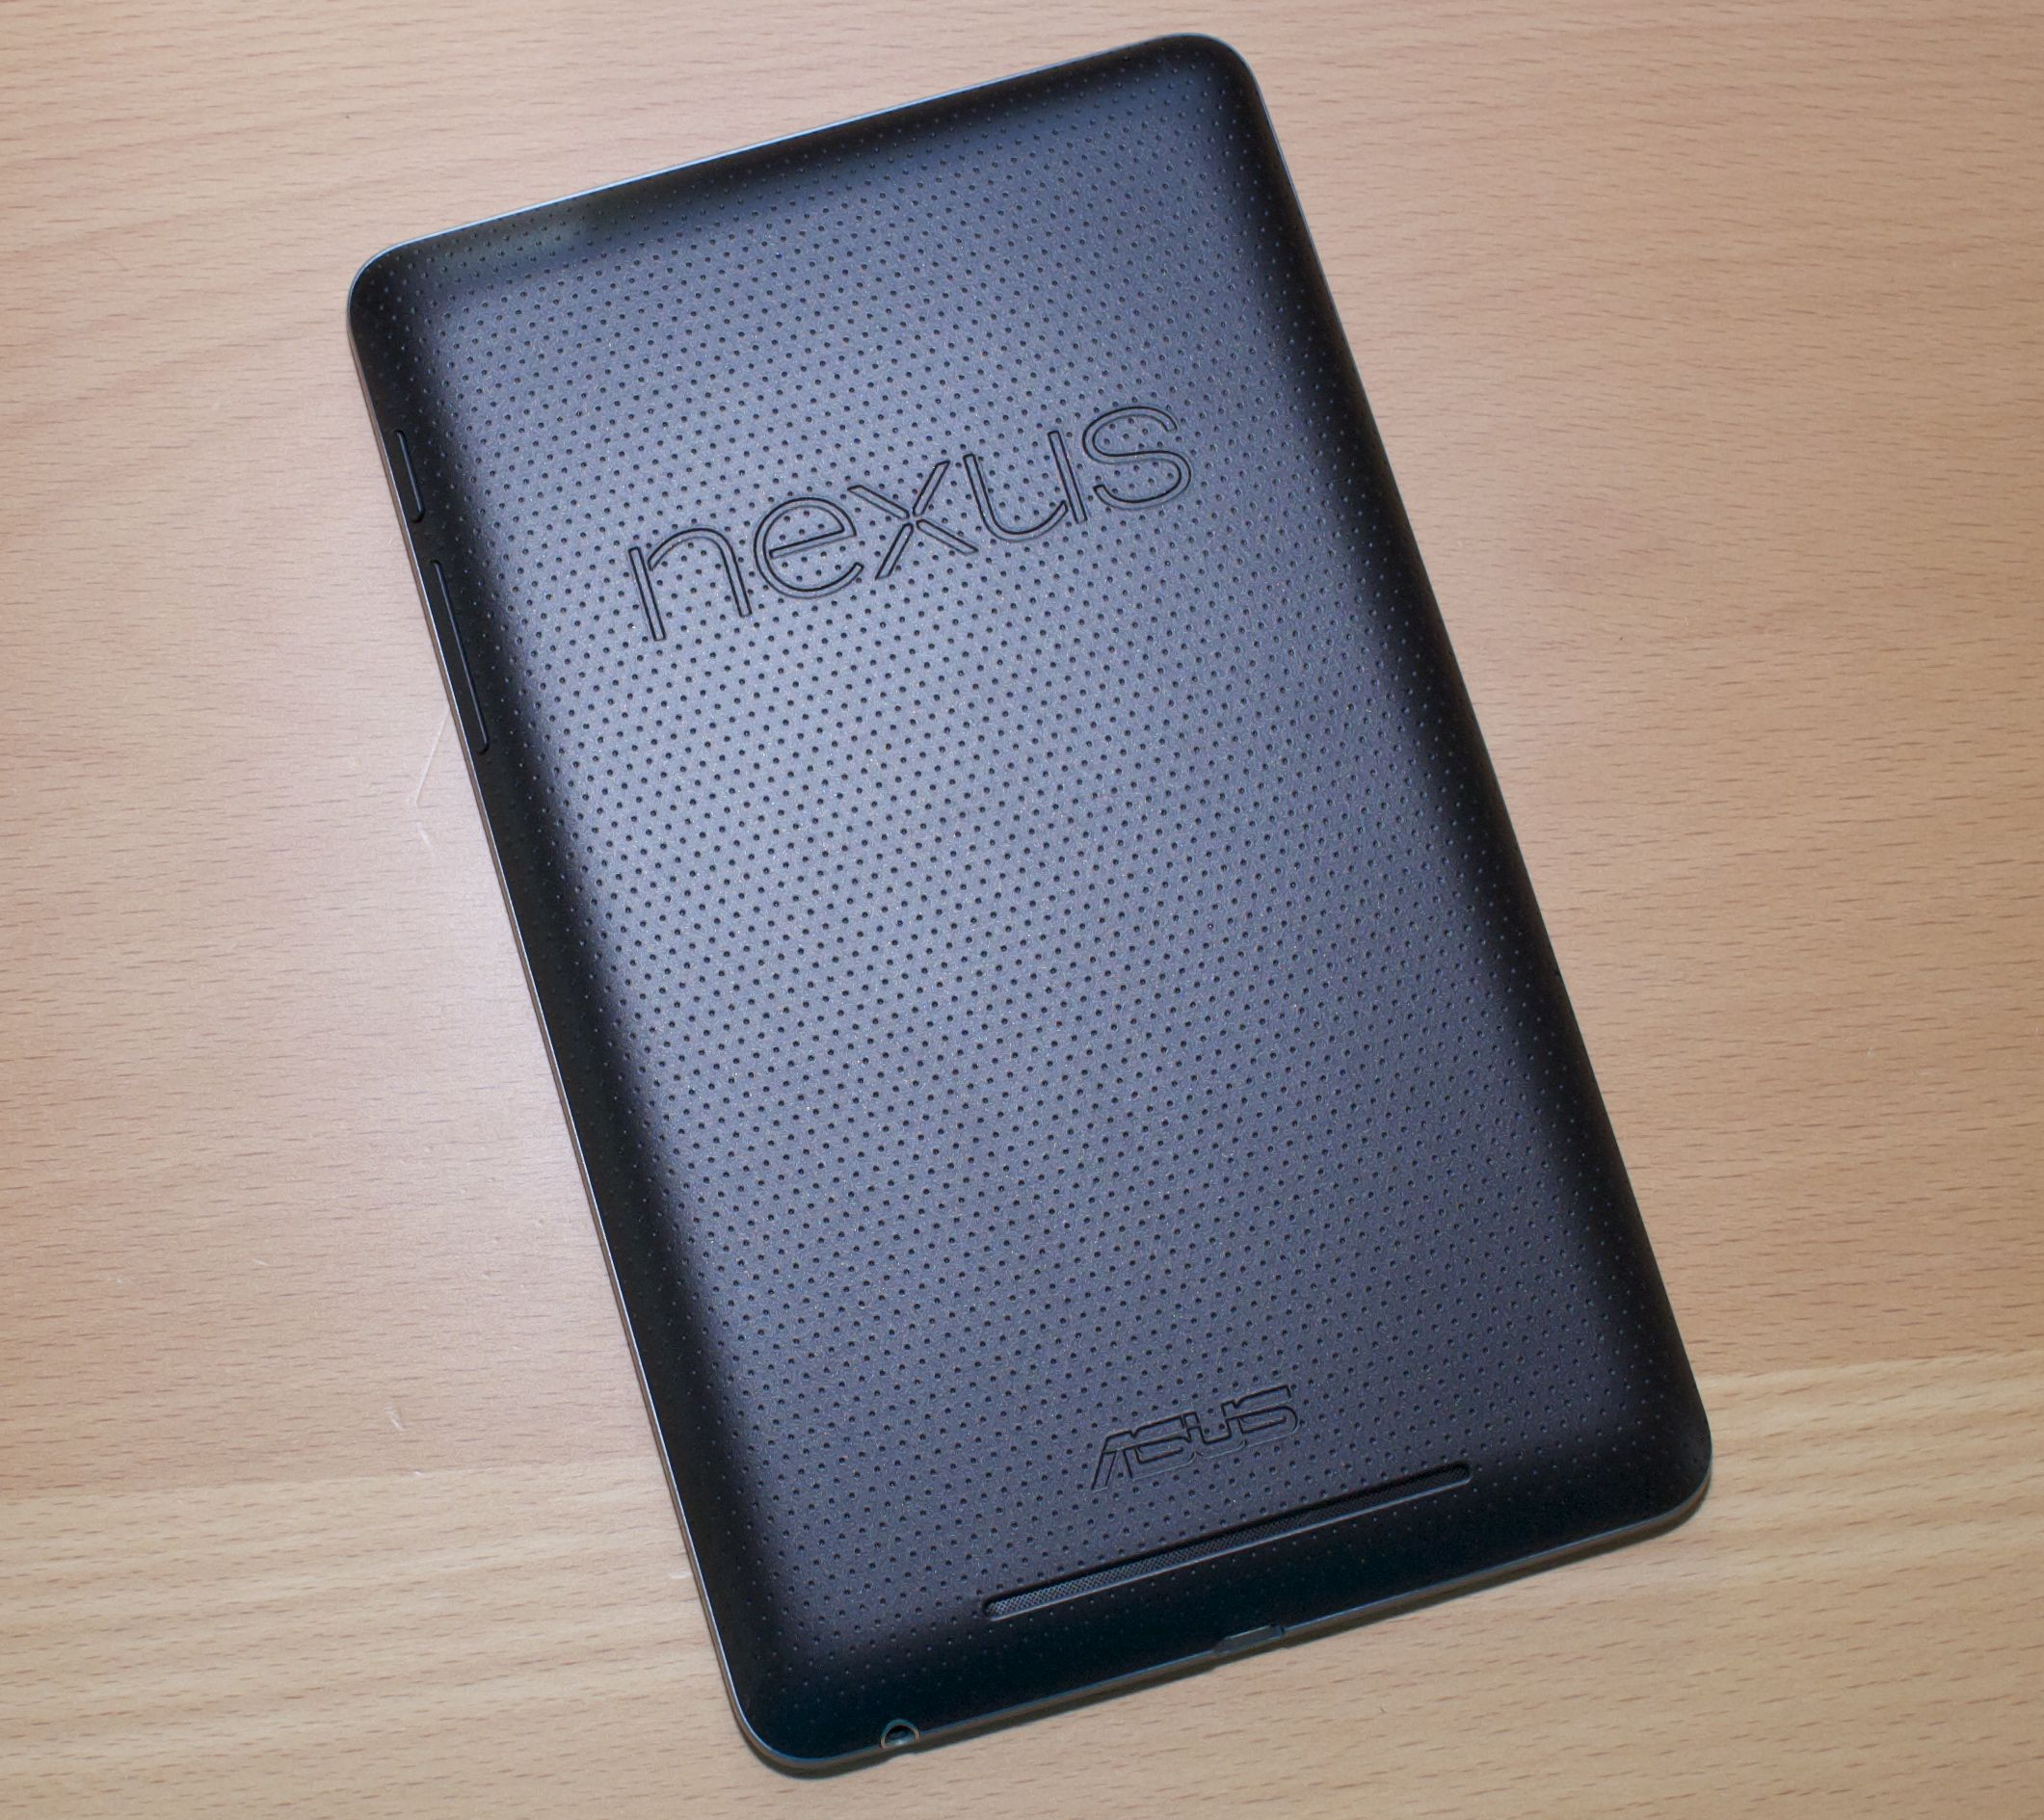 Nexus 7 2012 Box Google's nexus 7 is a